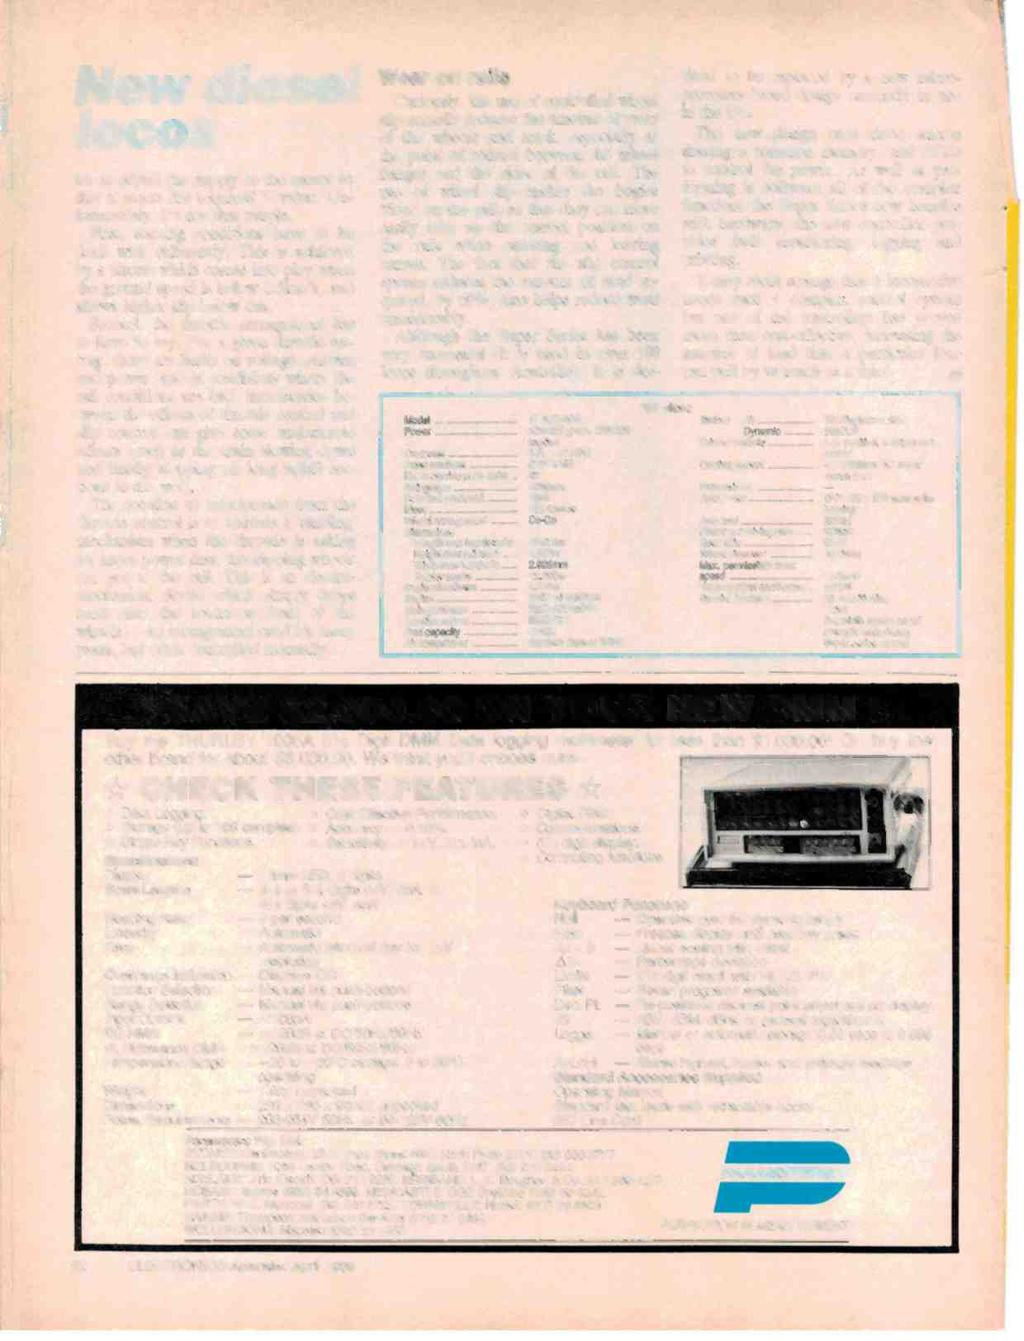 Australias Top Selling Electronics Magazine April 1986 Aust Arlec Door Chime Wiring Diagram I New Diesel Locos Ter To Adjust The Supply Motor So That